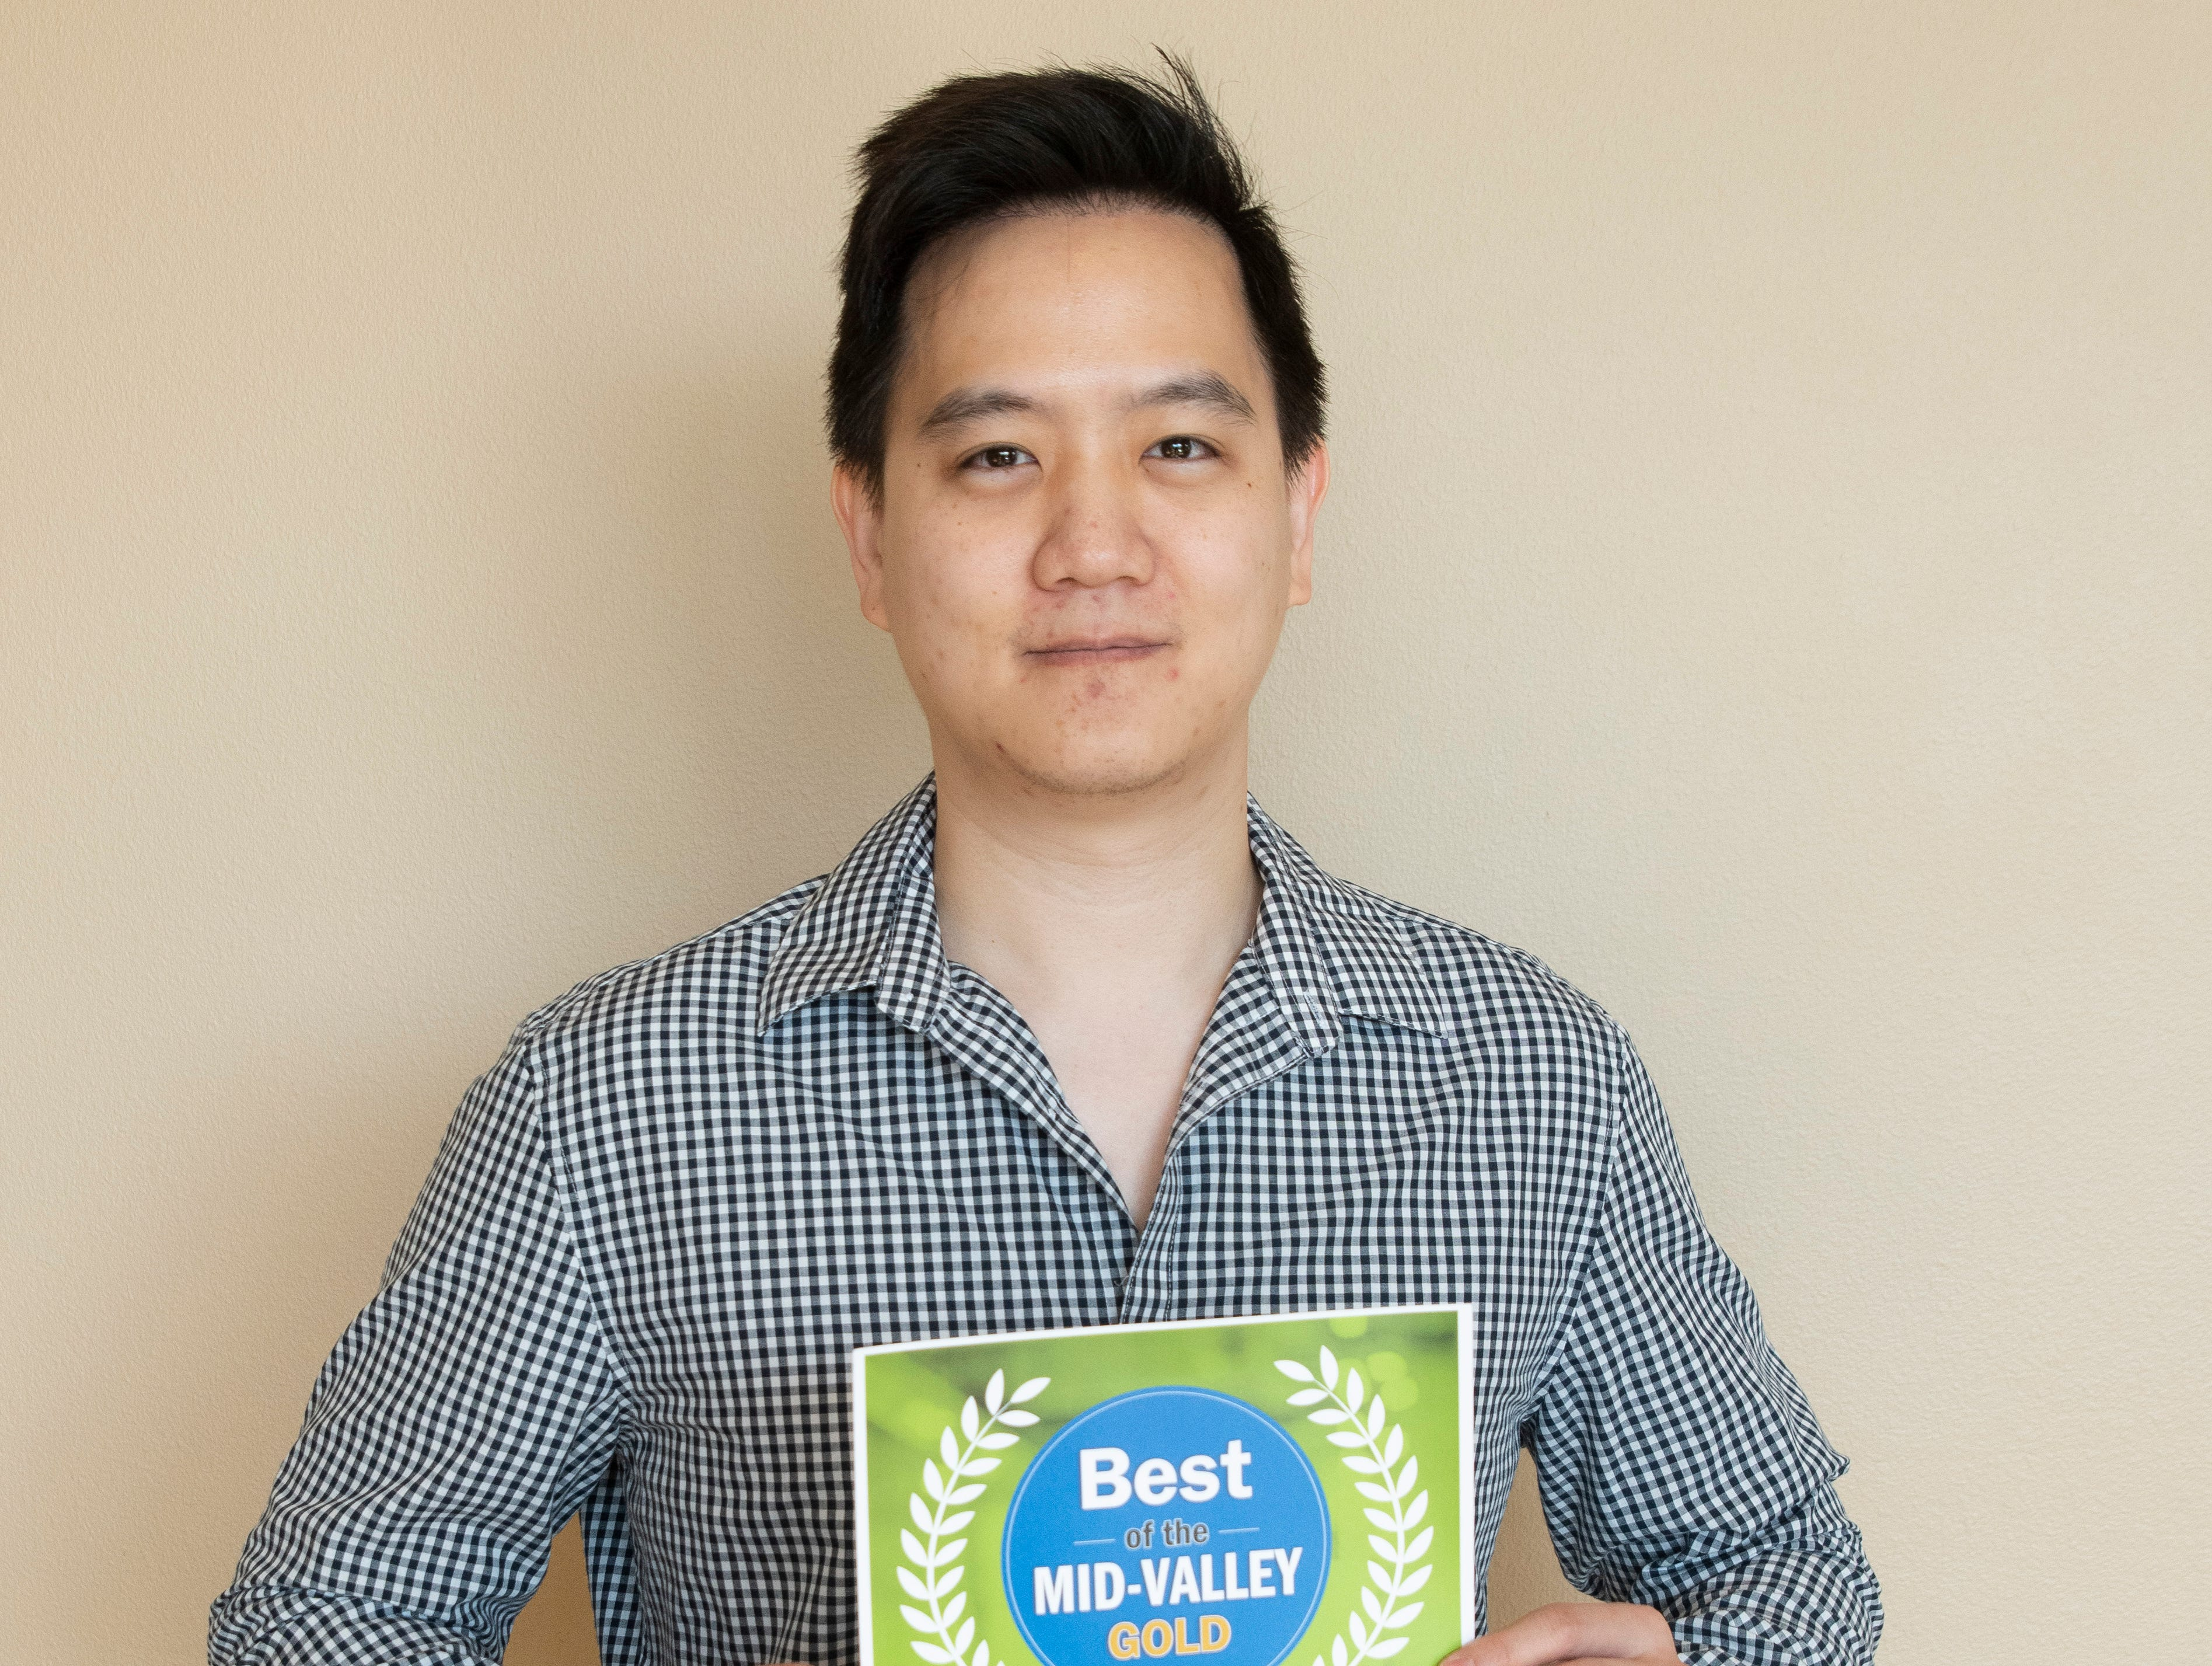 Thai Orchid won gold for Best Thai in the 2019 Best of the Mid-Valley.